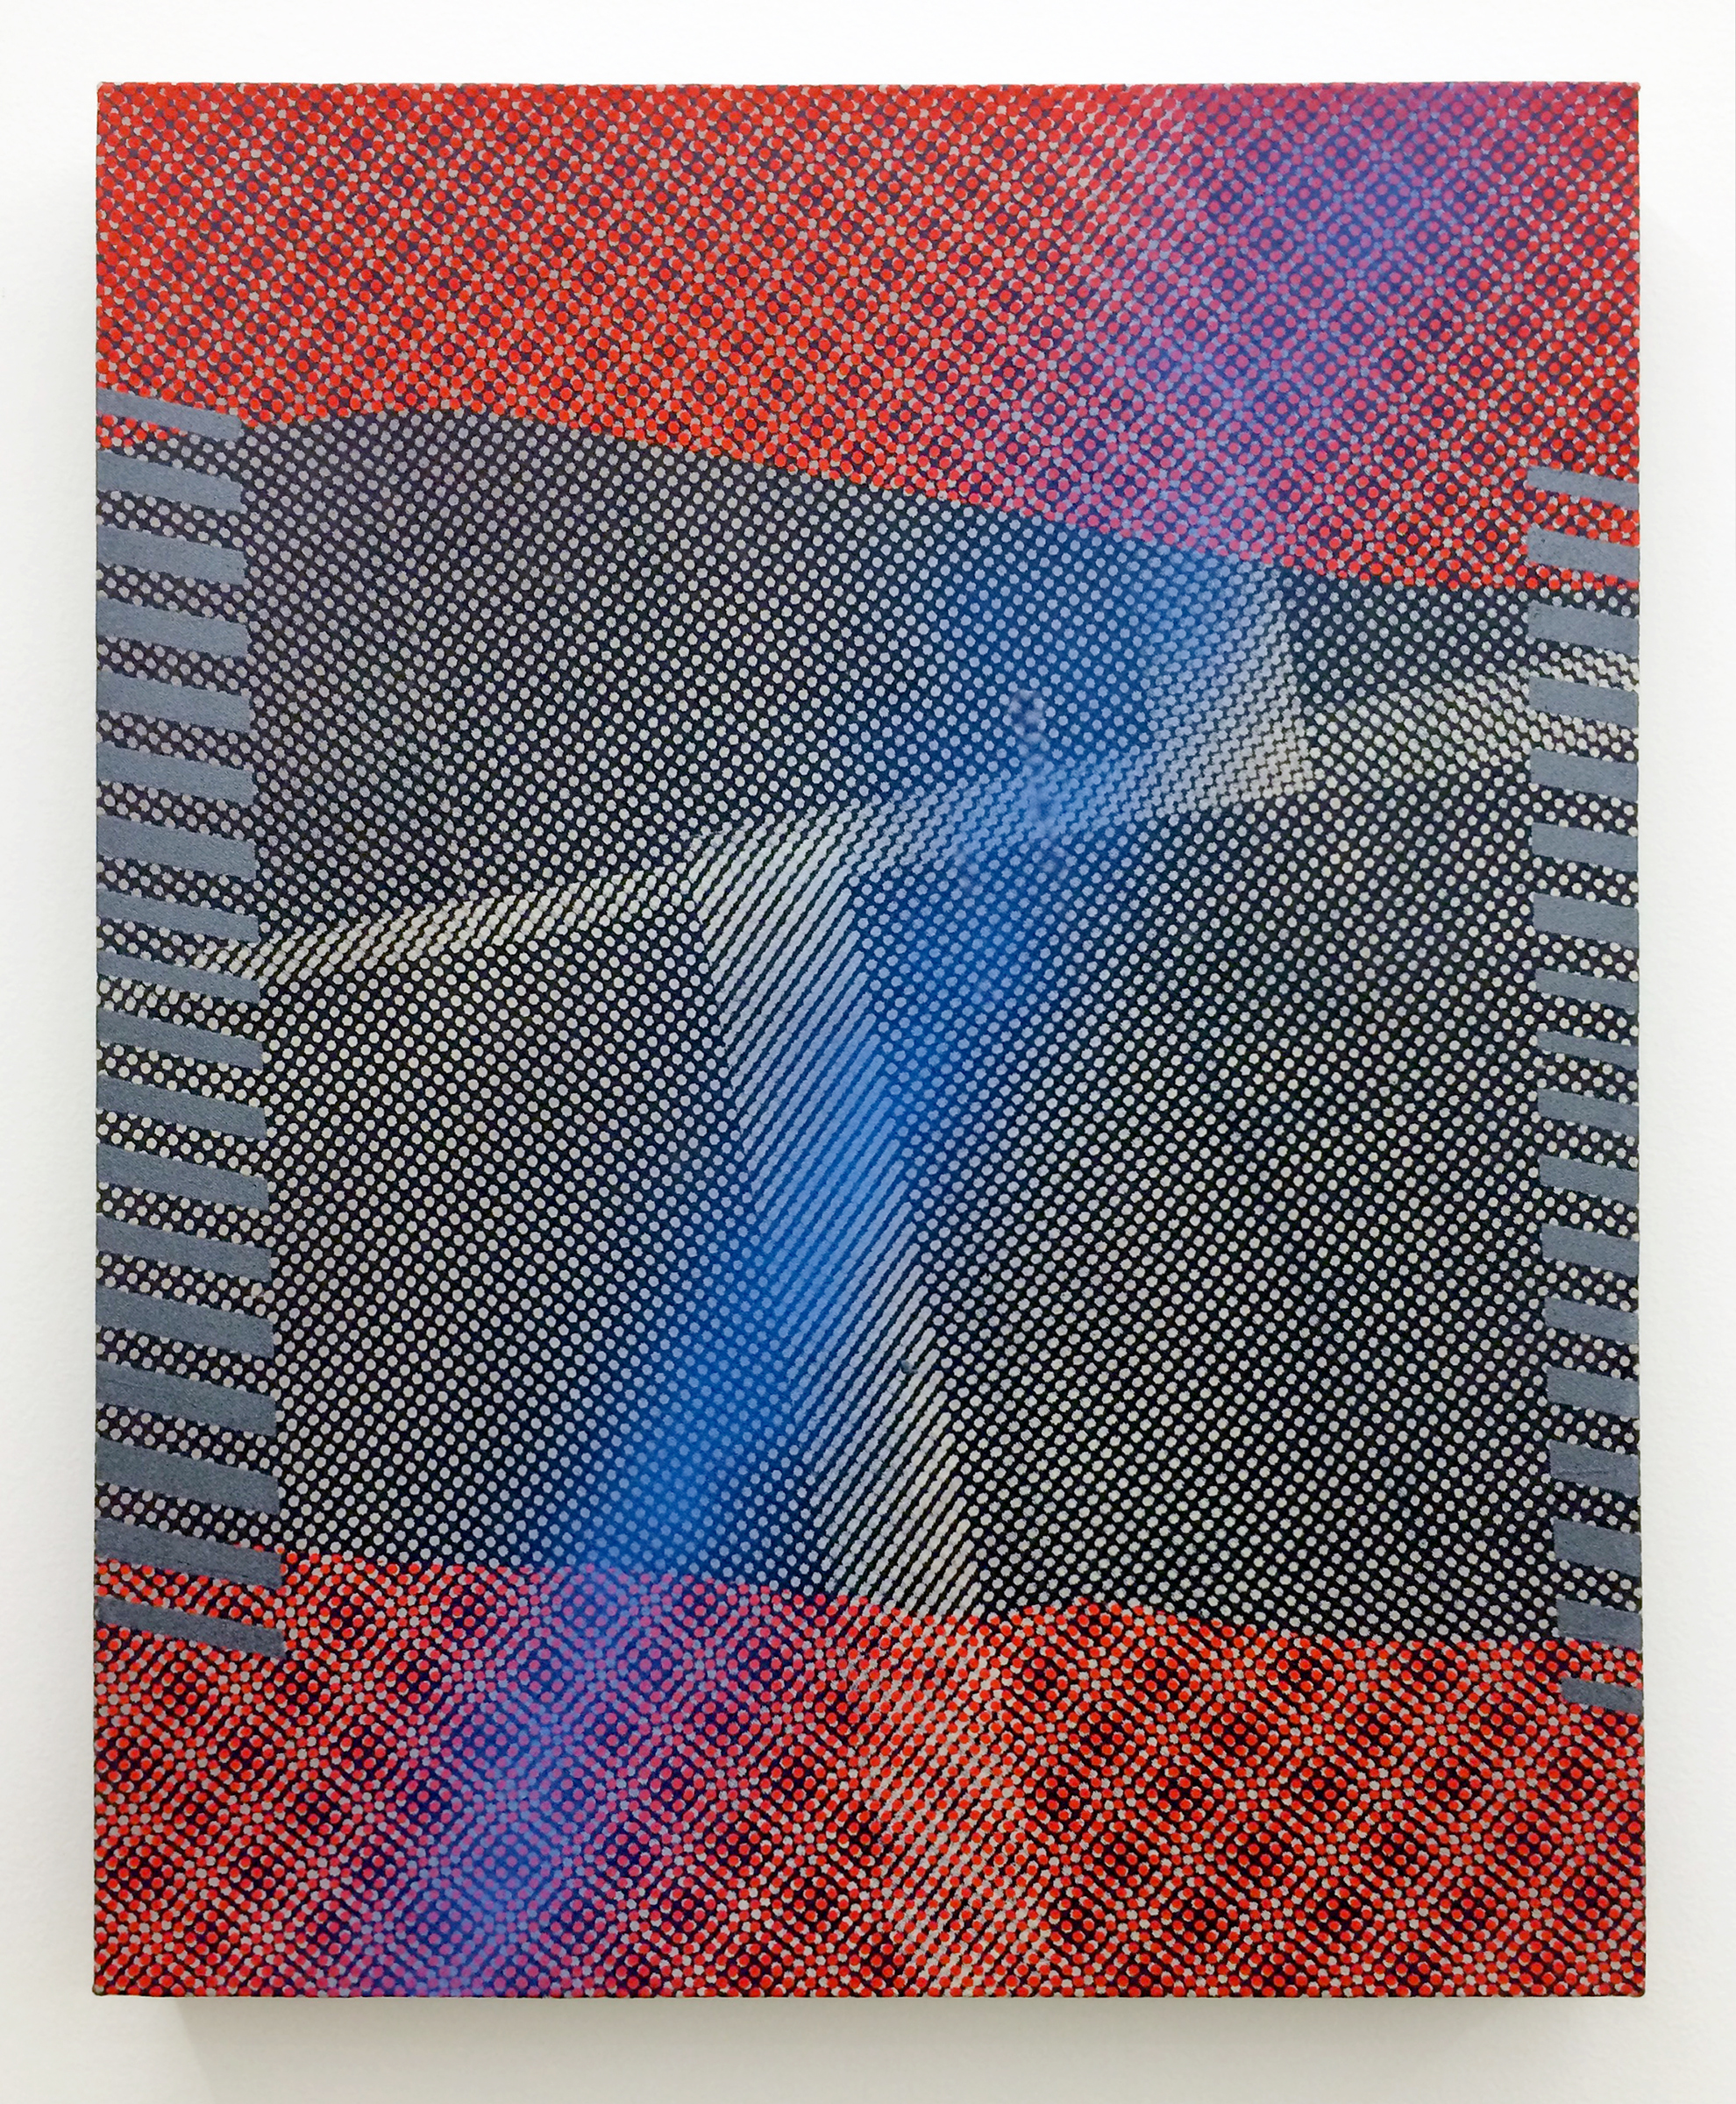 """AMANDA CURRERI   Giovanni's Room , 2016, fabric dye and remover, acrylic and rabbit skin glue on cotton mounted to panel, 24"""" x 19"""""""